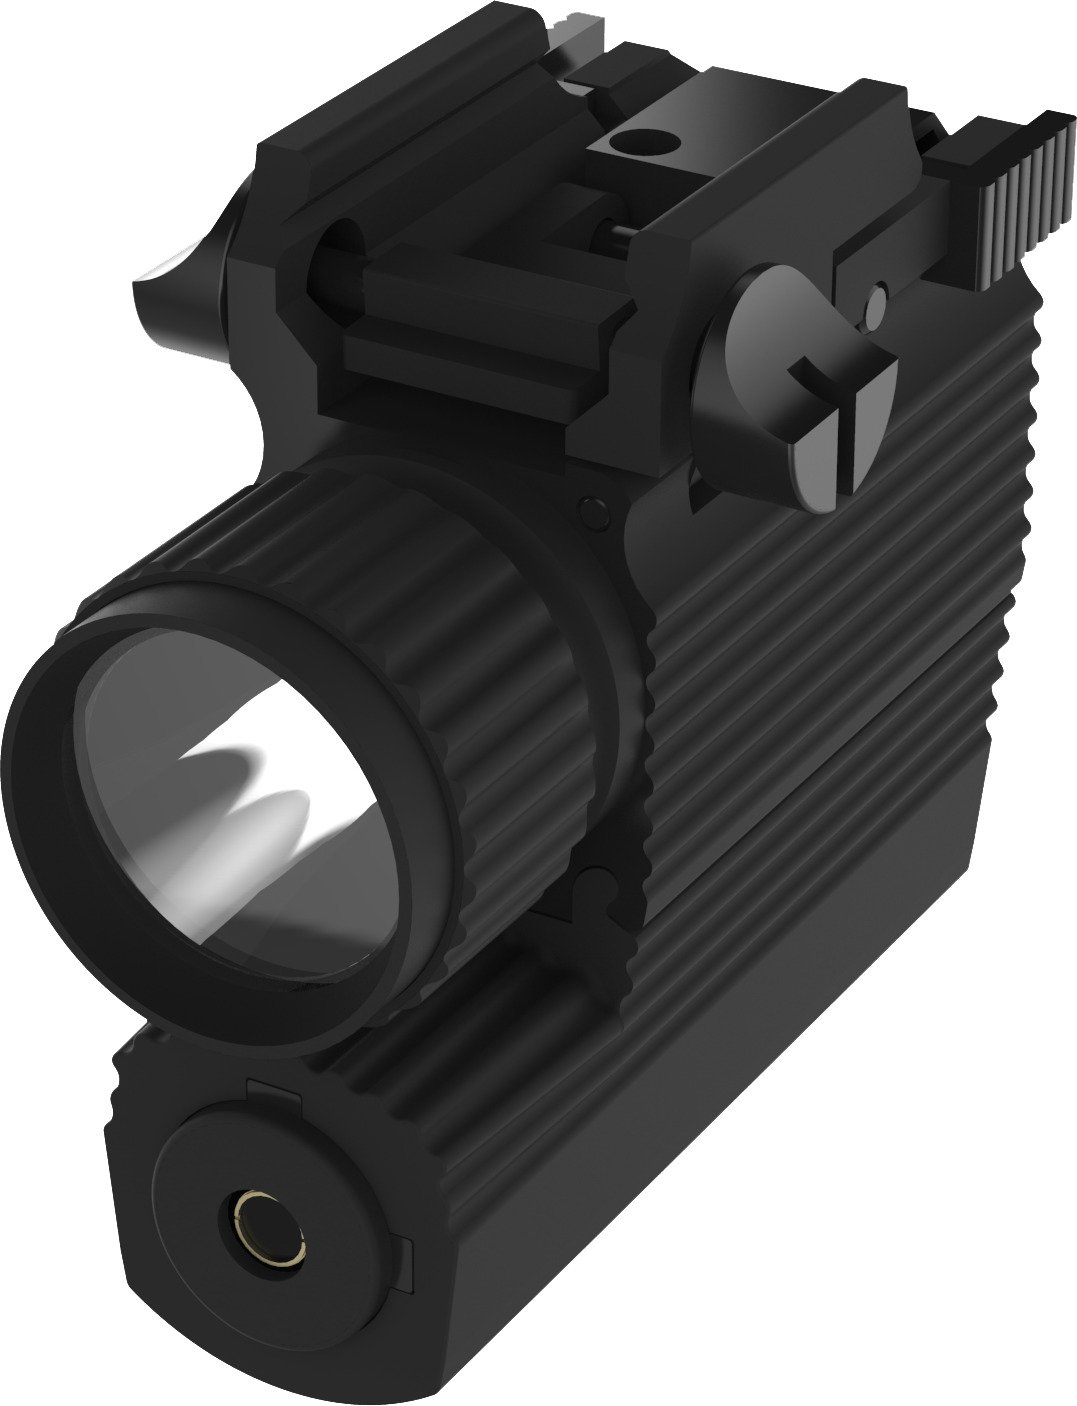 iProtec 190 Lumen Firearm Light with Green Laser - view number 2